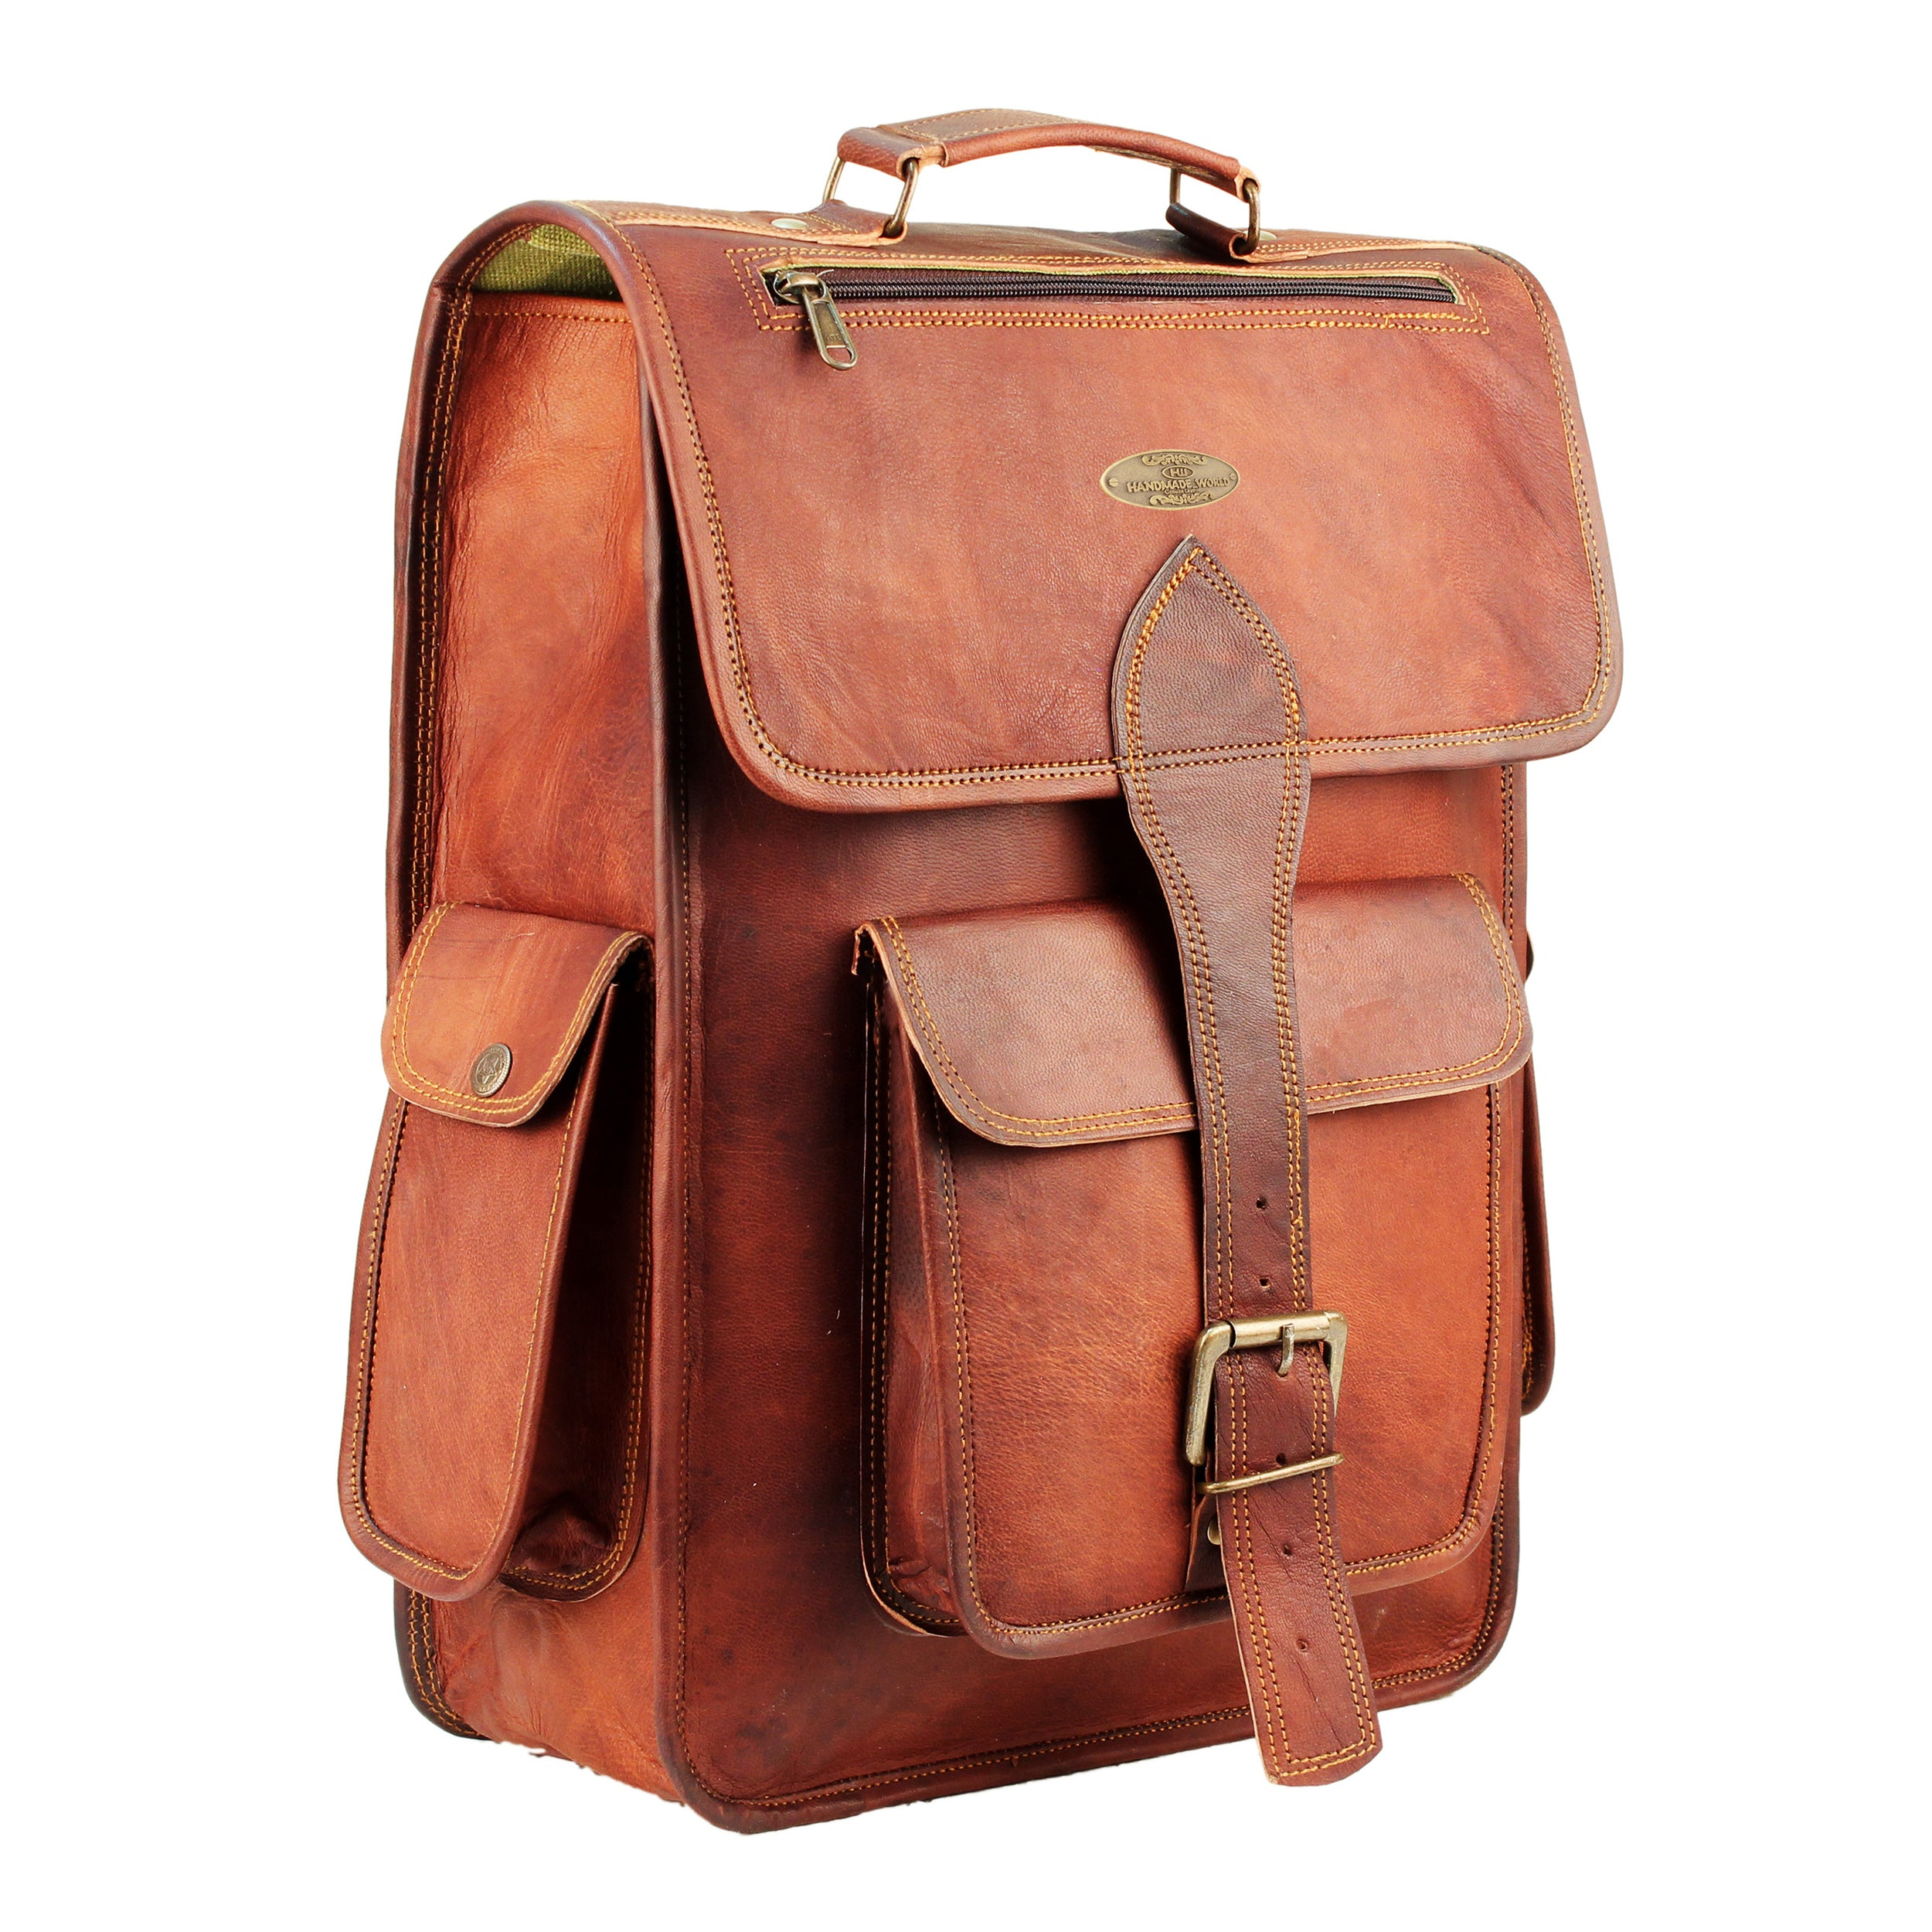 Full Grain Rustic Leather Backpack with Top Handle